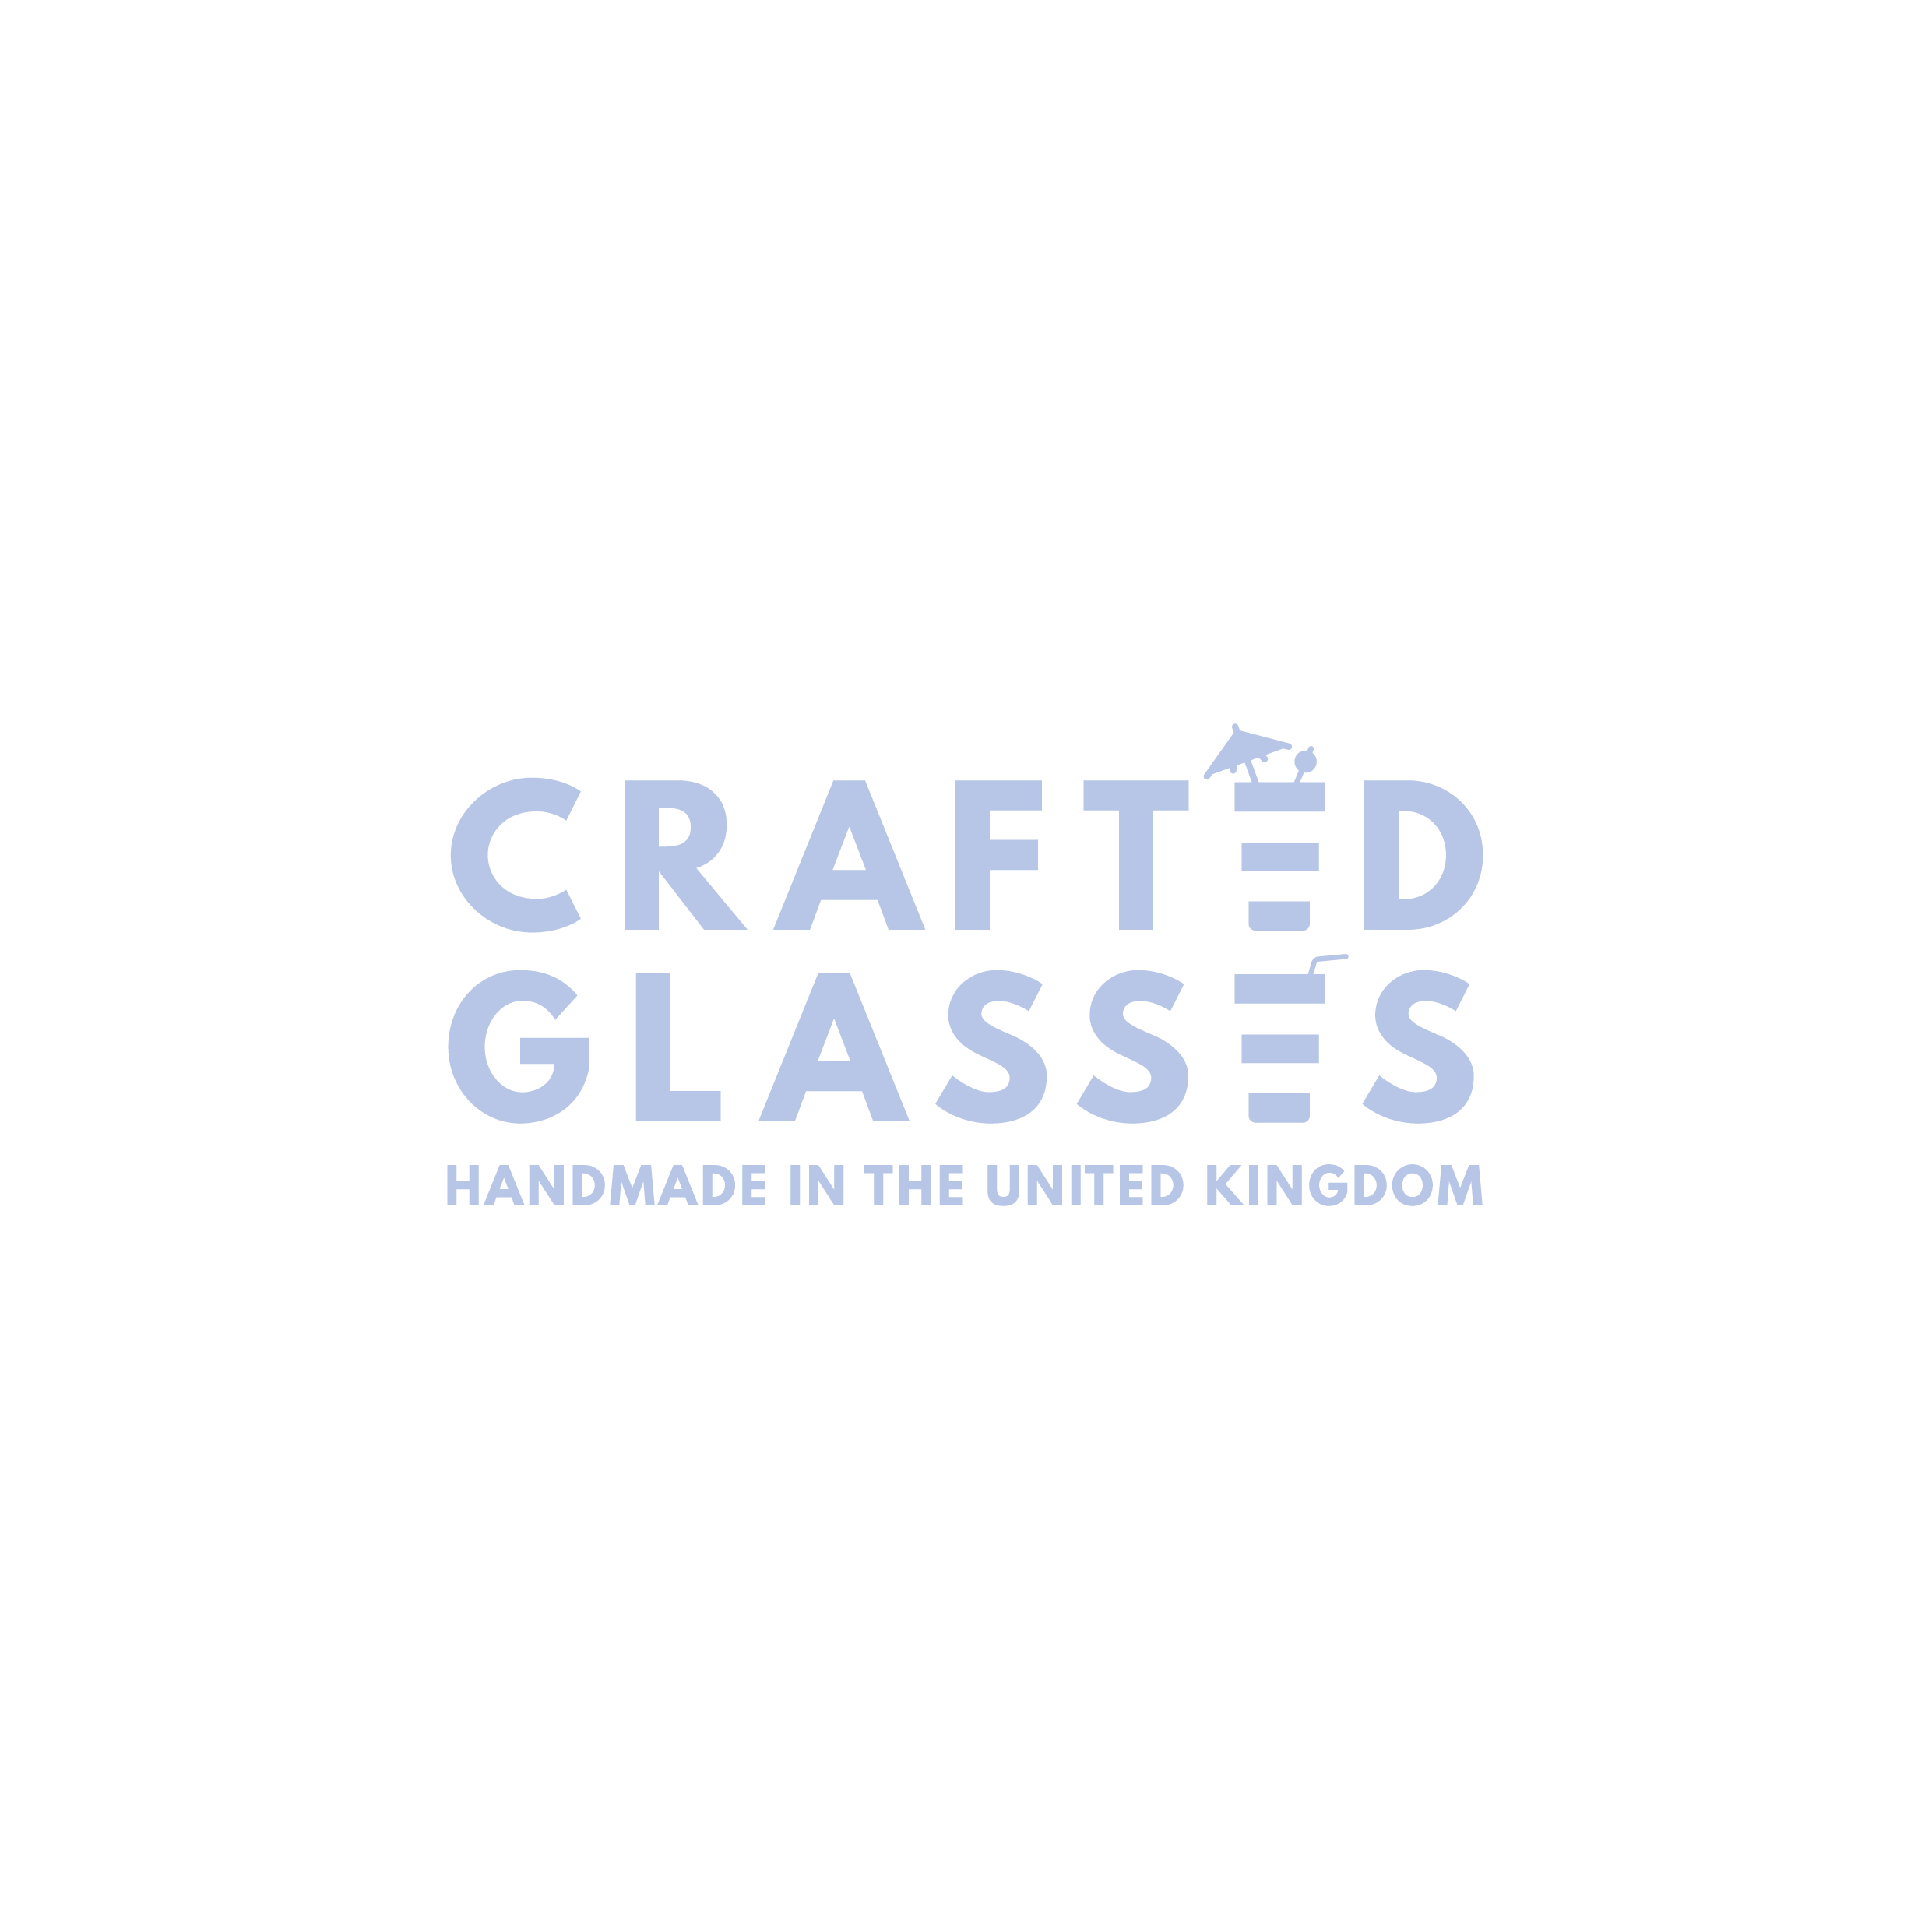 Crafted Glasses-02.png